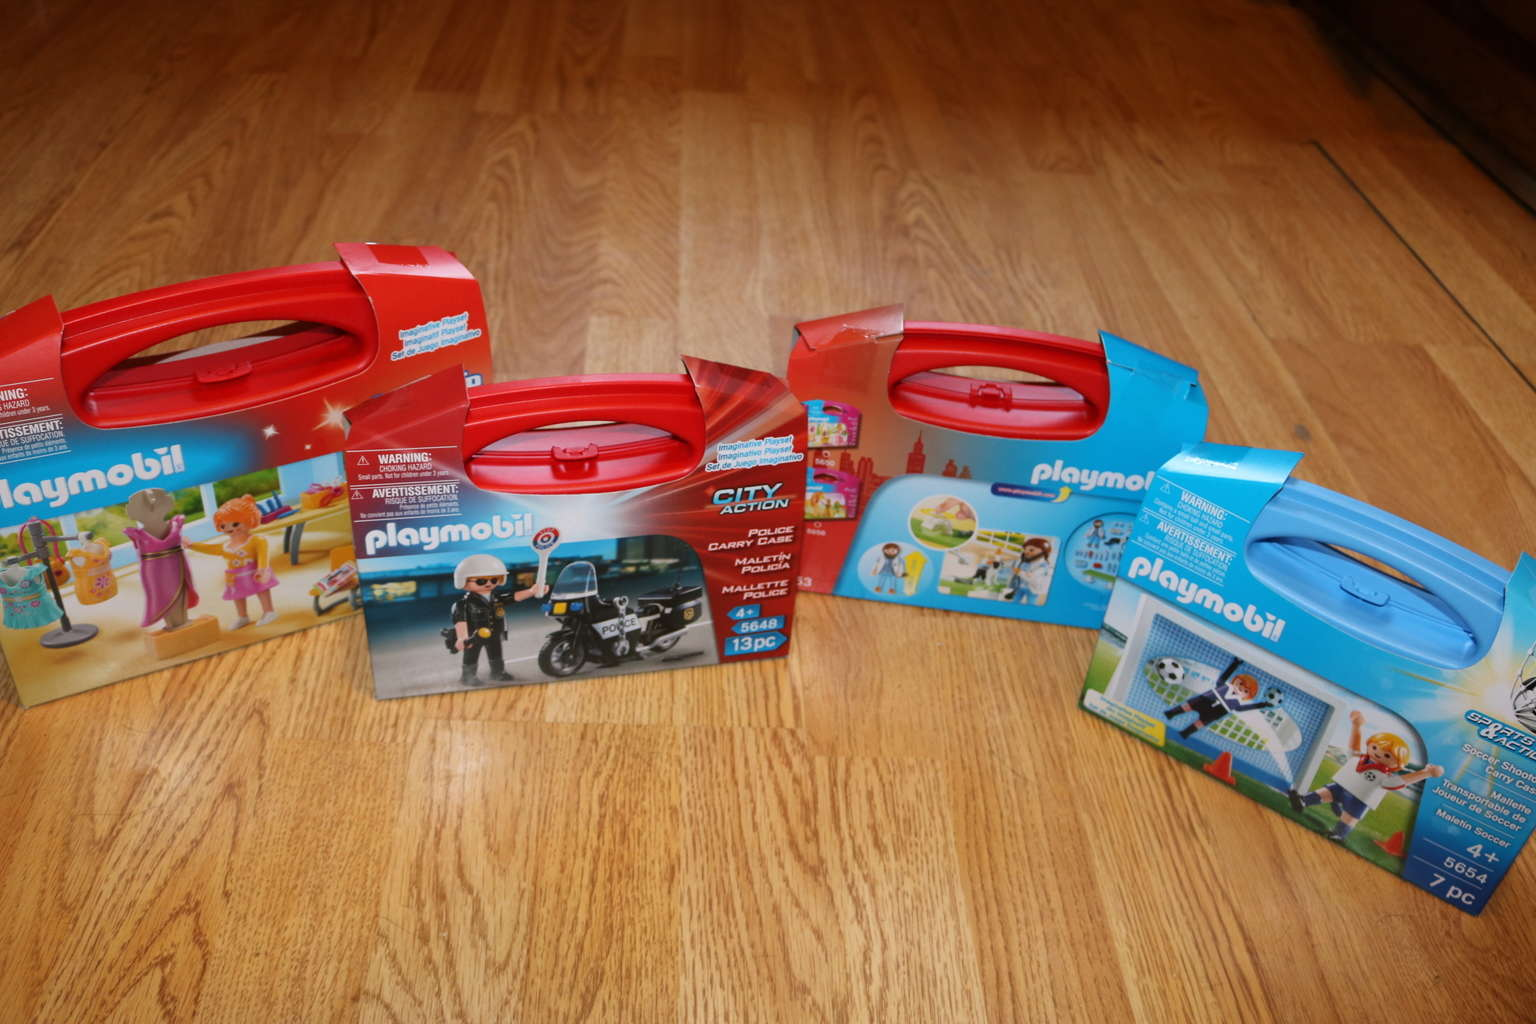 PLAYMOBIL Giveaway!